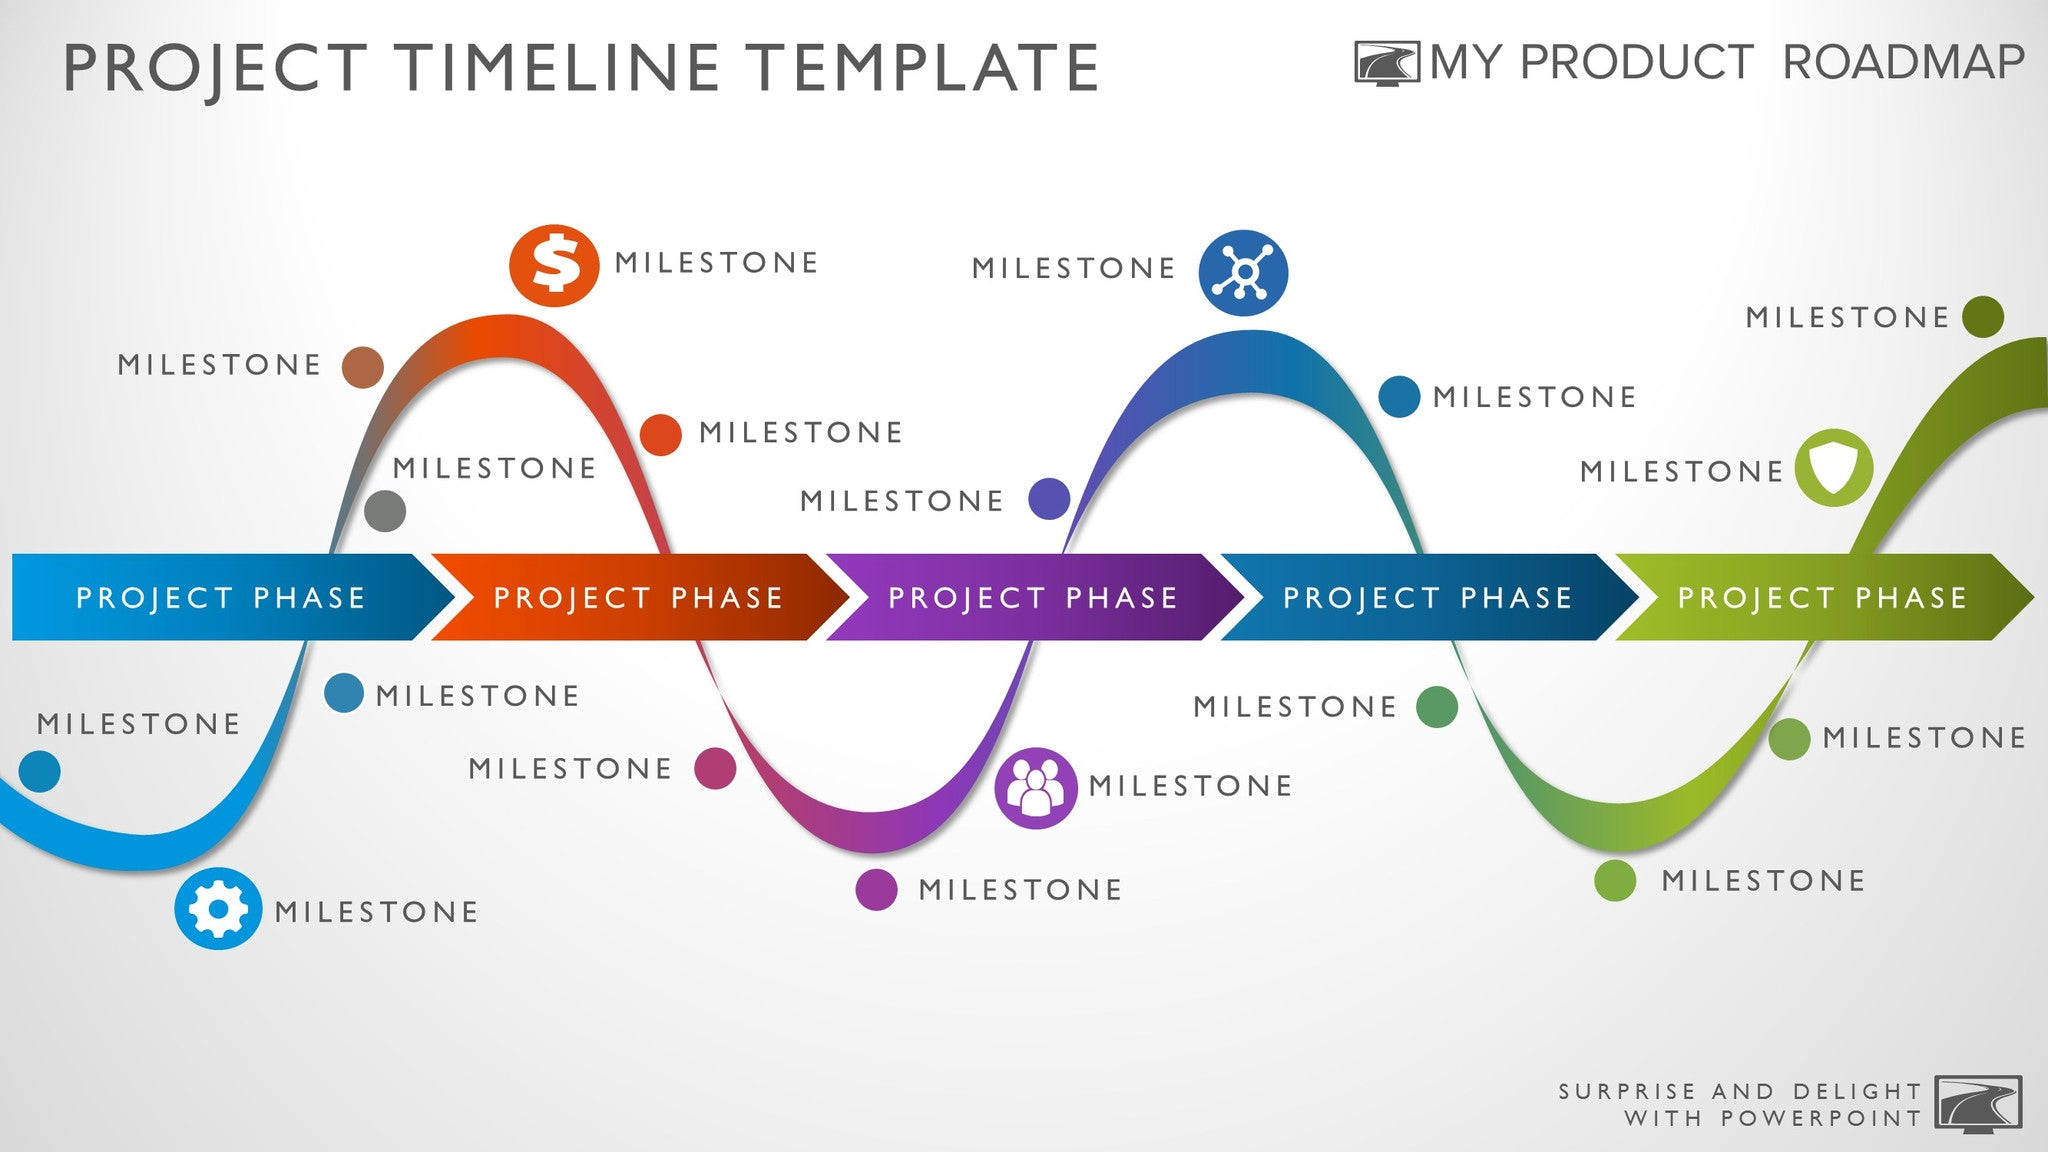 Five Phase Visual Timeline Template My Product Roadmap - Timeline roadmap template